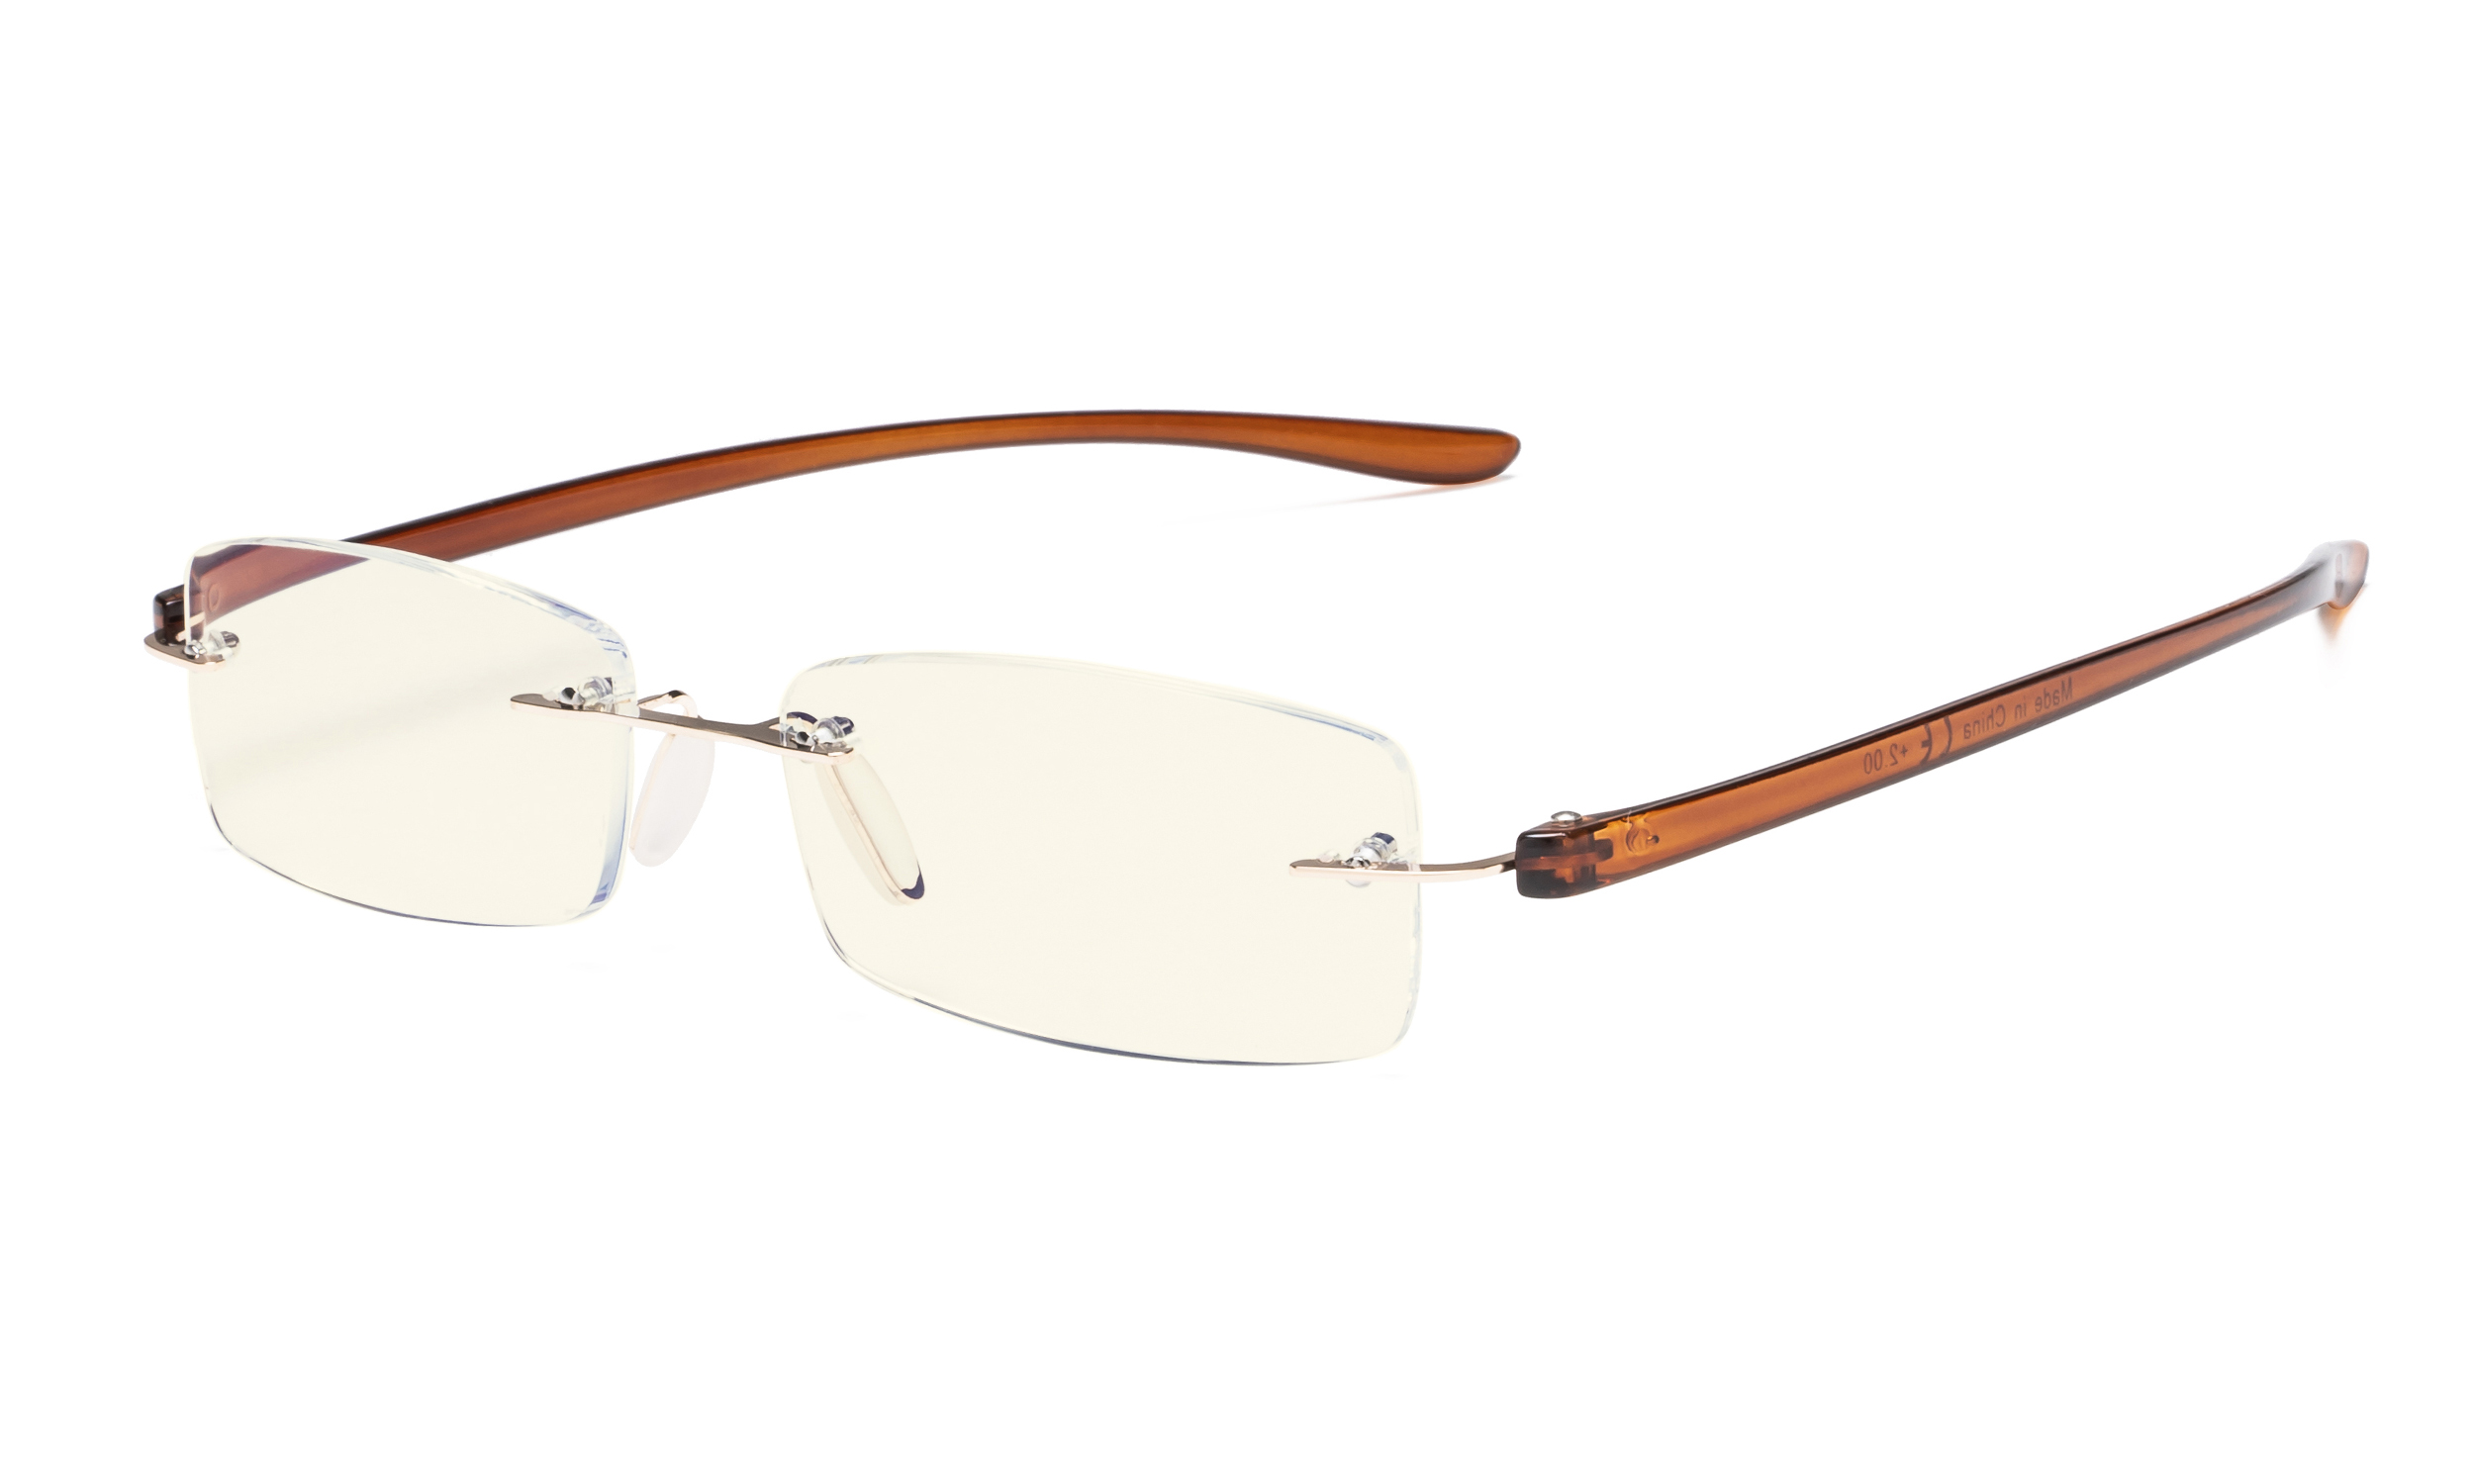 6d9ed592cd13 Computer Reading Glasses Blue Light Filter Rimless Readers UV Protection  Gold-Brown Arm UVCG1 Item NO: UVCG1-Gold-Brown Arm